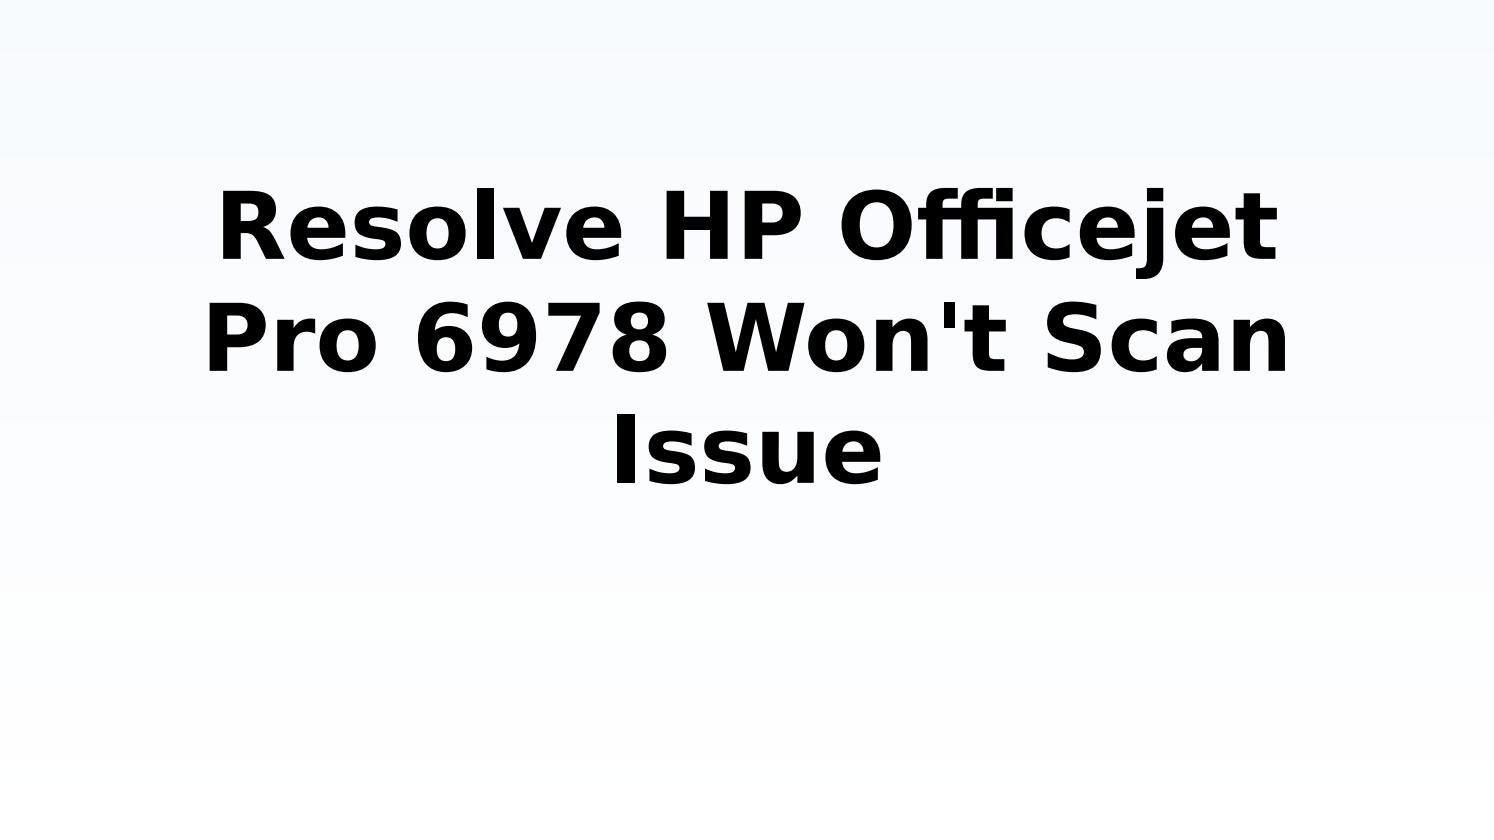 Solve HP Officejet Pro 6978 Won't Scan Issue by techiebee18